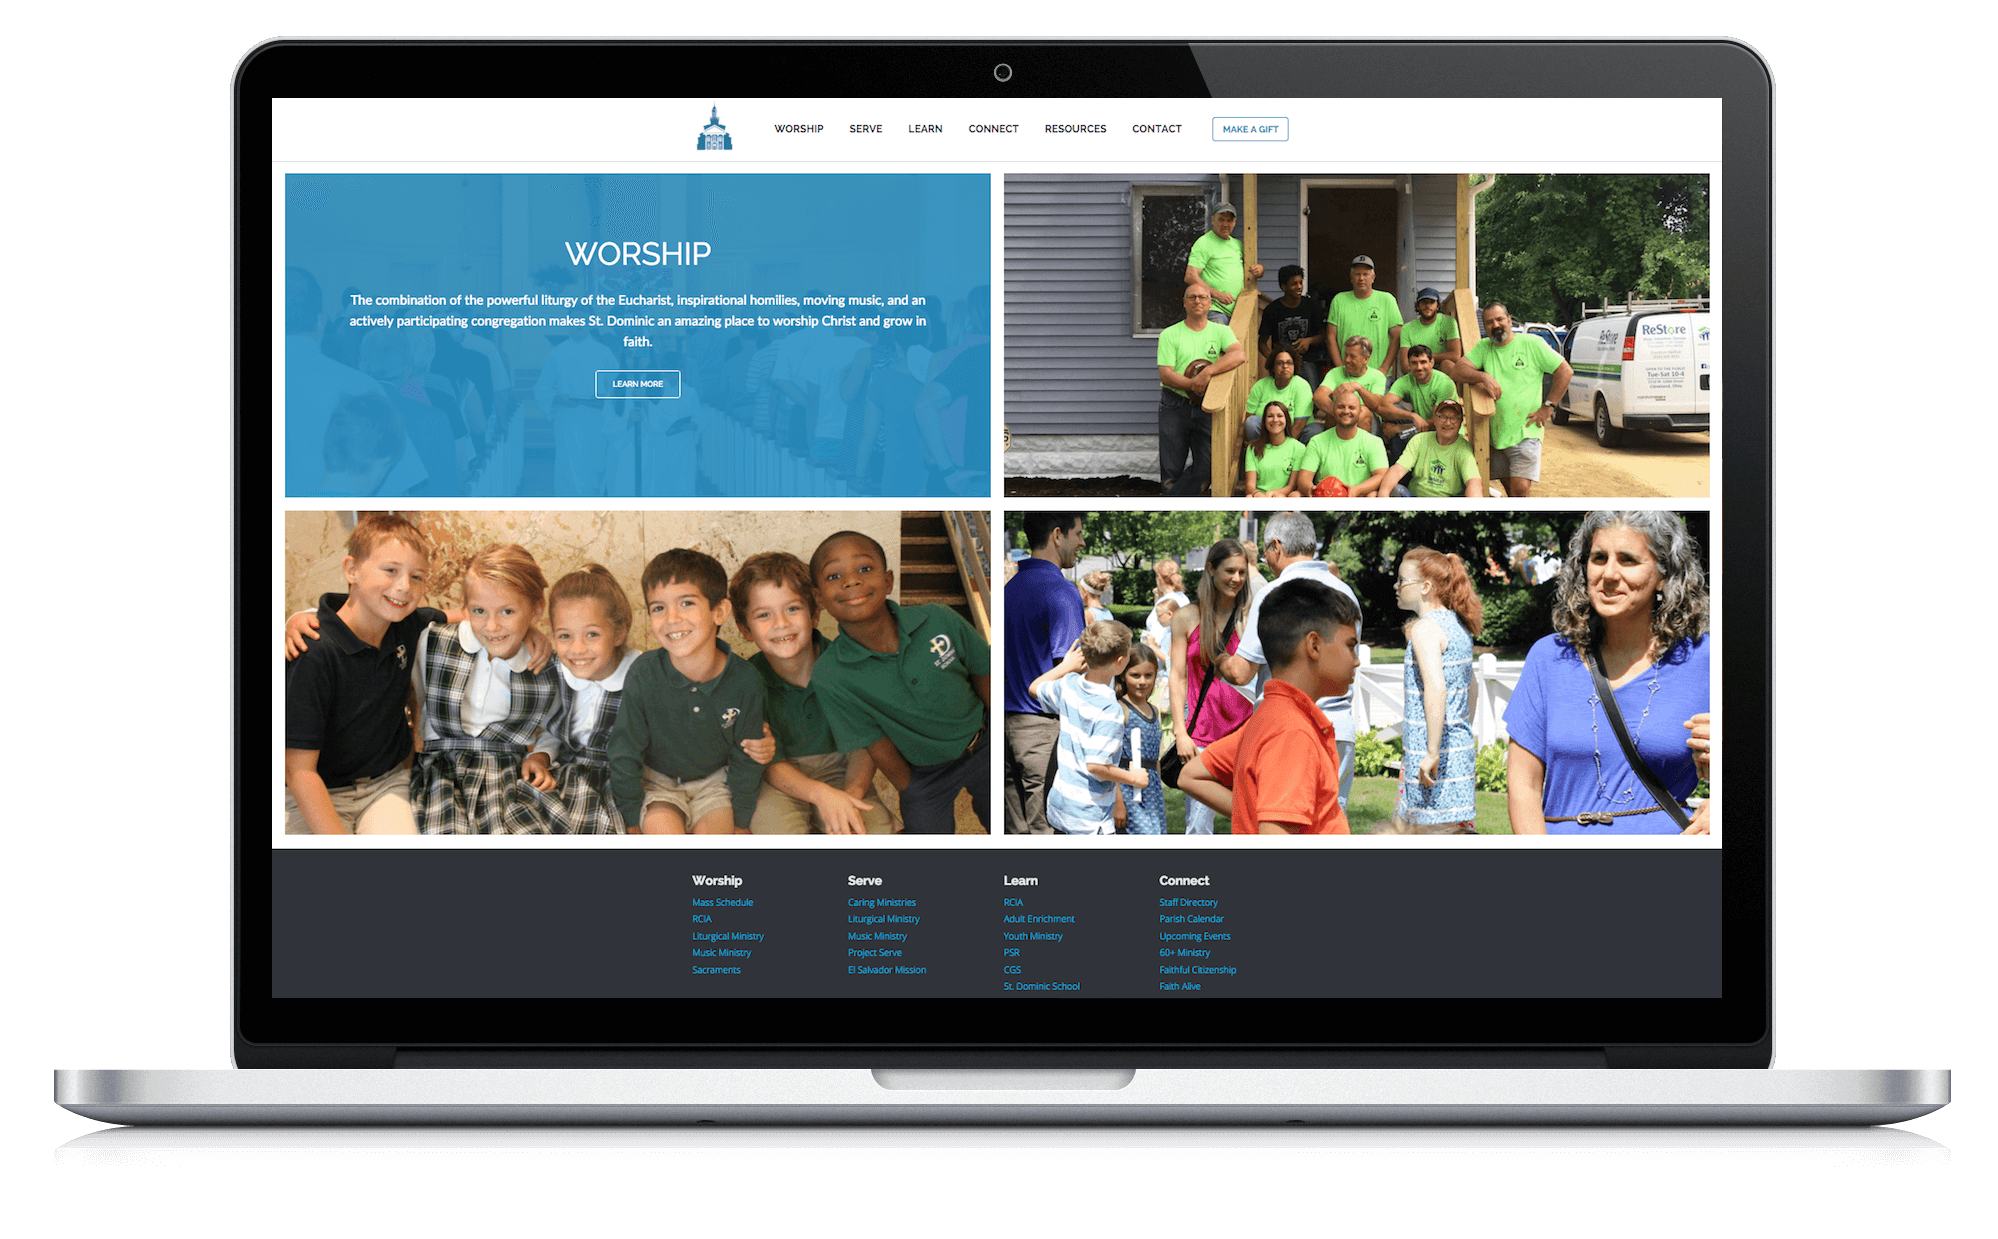 Image of responsive web design case study by Quetra Creative for St. Dominic Macbook Pro